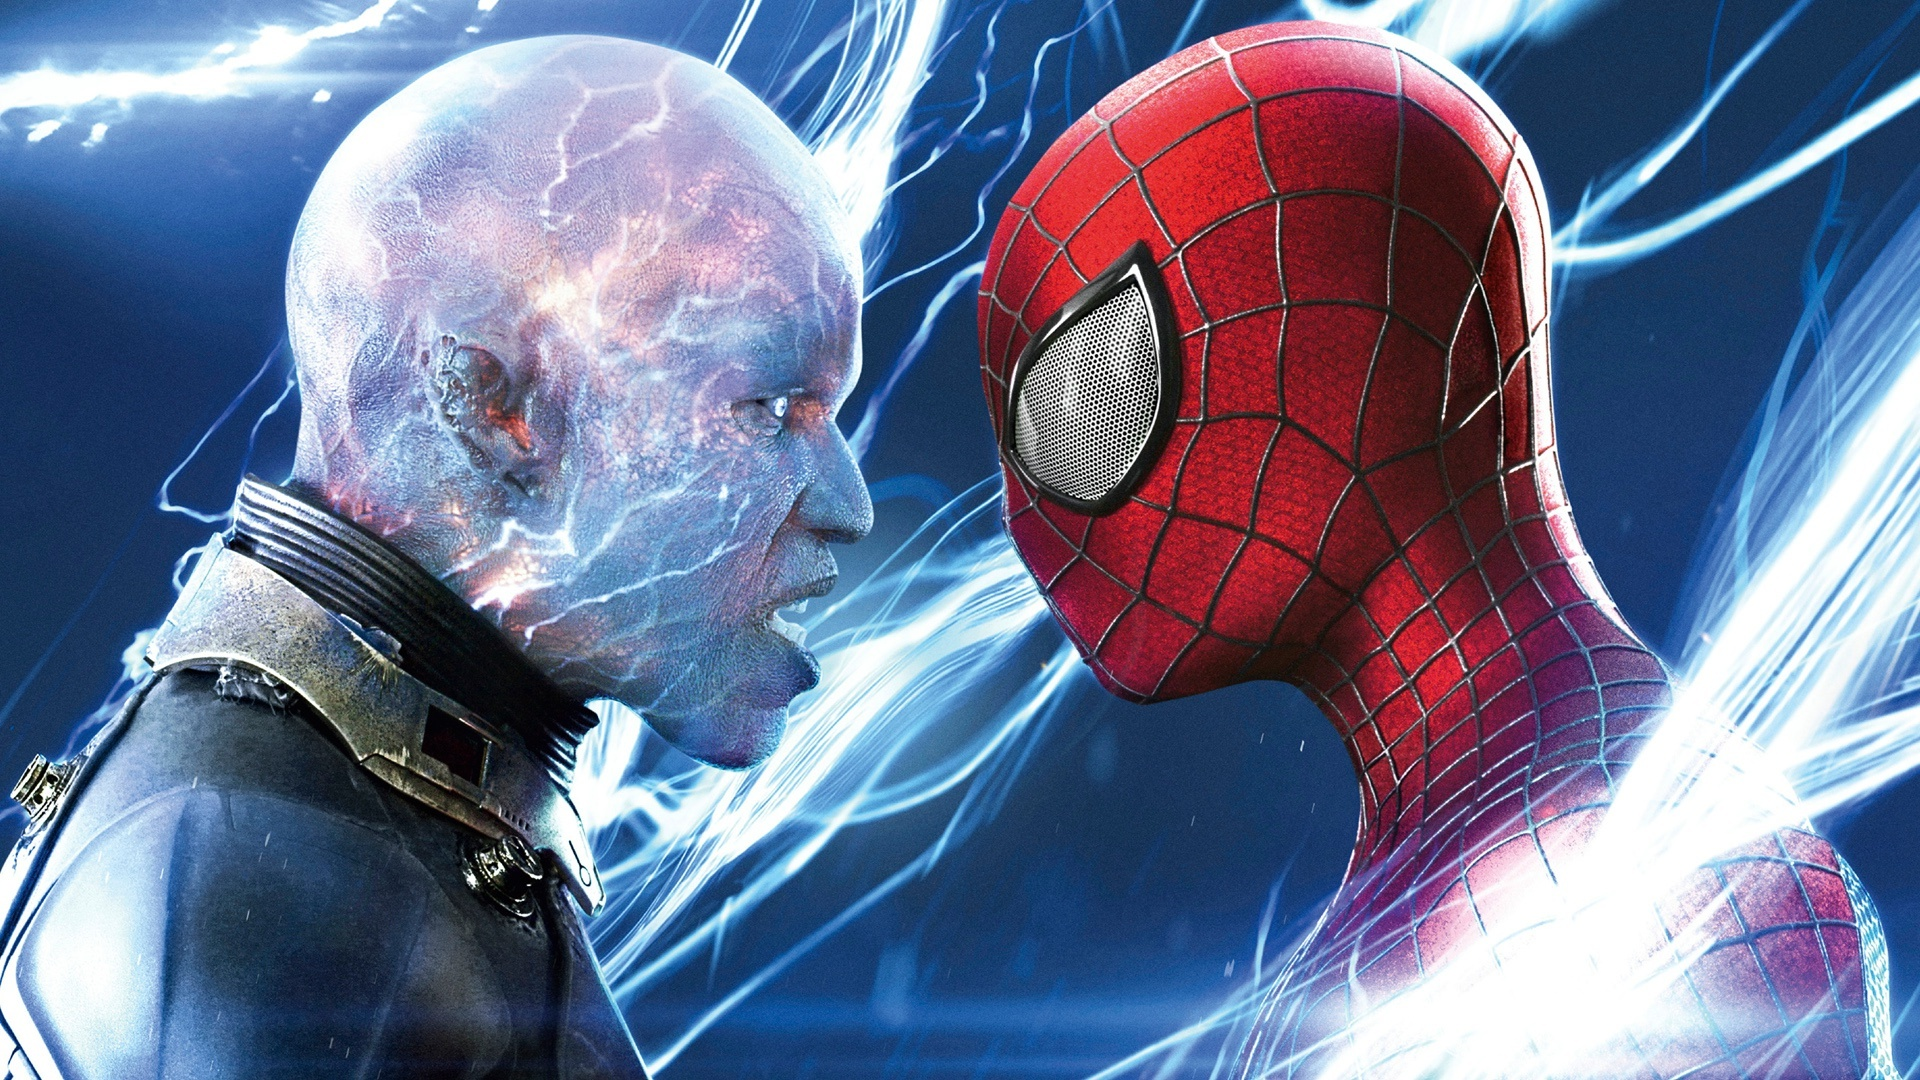 The amazing spider man 2 has earned over 132 million overseas so far cinescape box office - Spider man 2 box office mojo ...